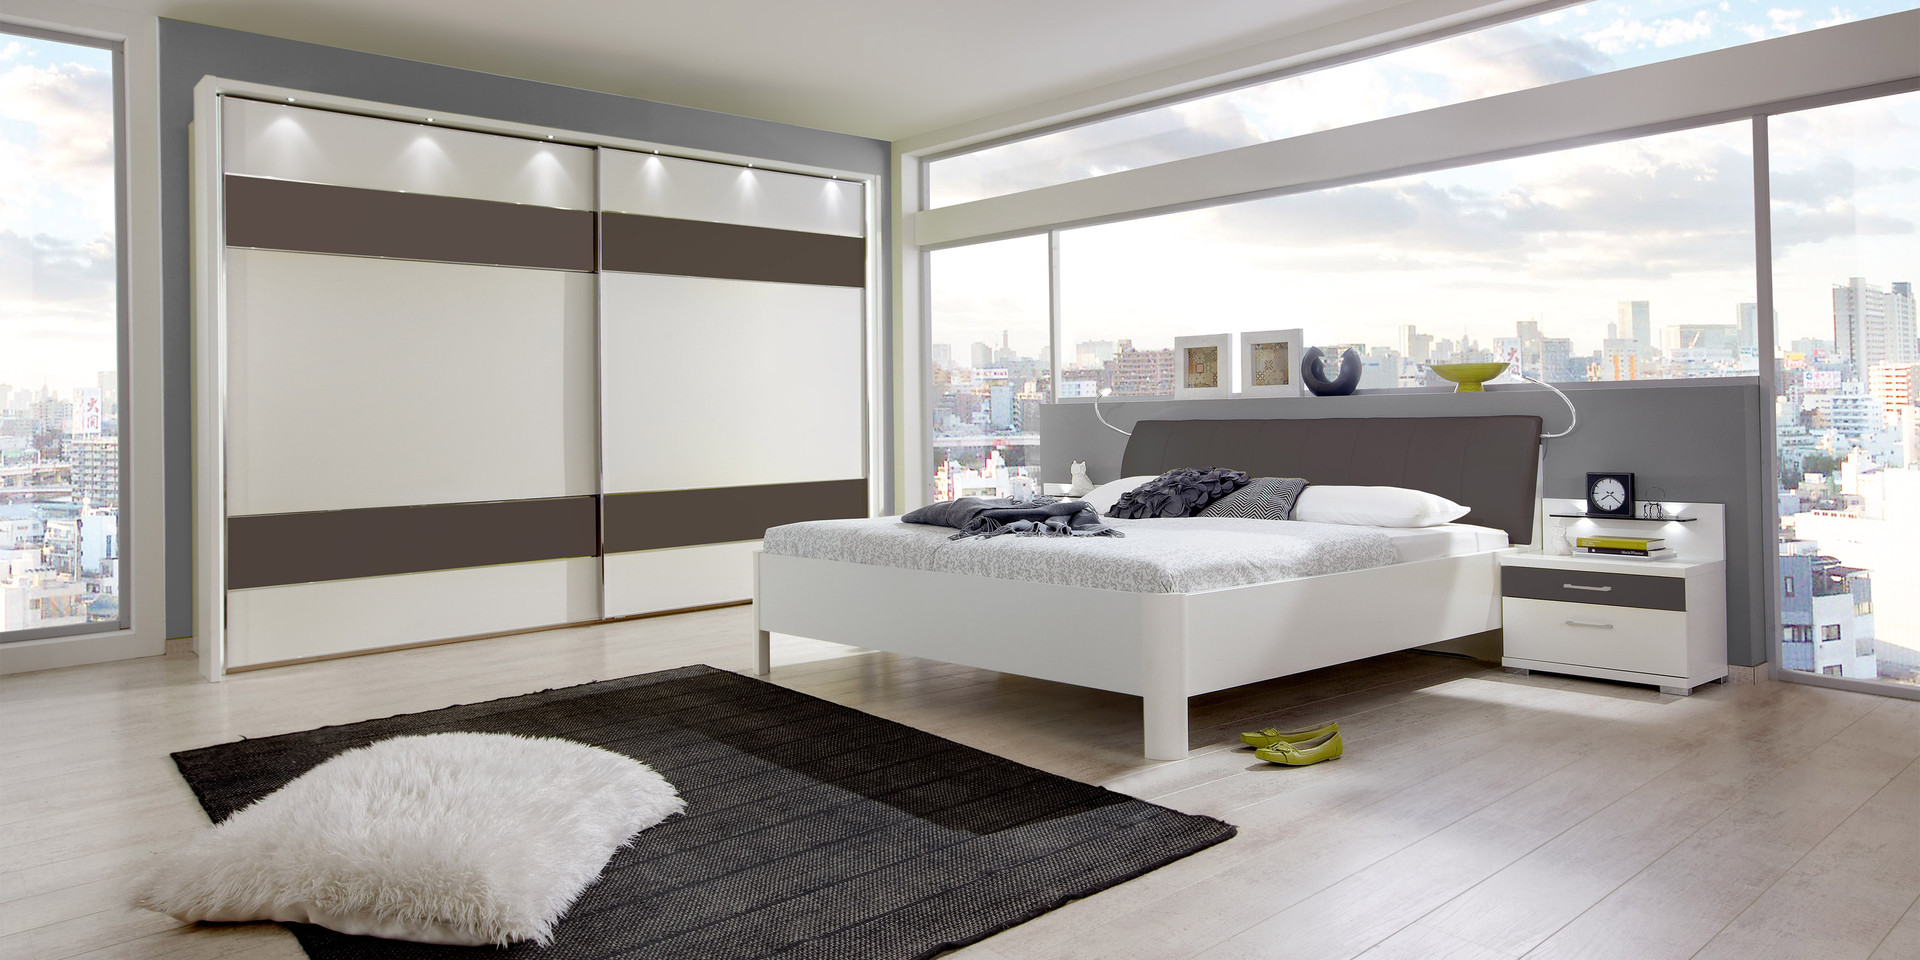 schlafzimmer modern bilder barock schlafzimmer. Black Bedroom Furniture Sets. Home Design Ideas